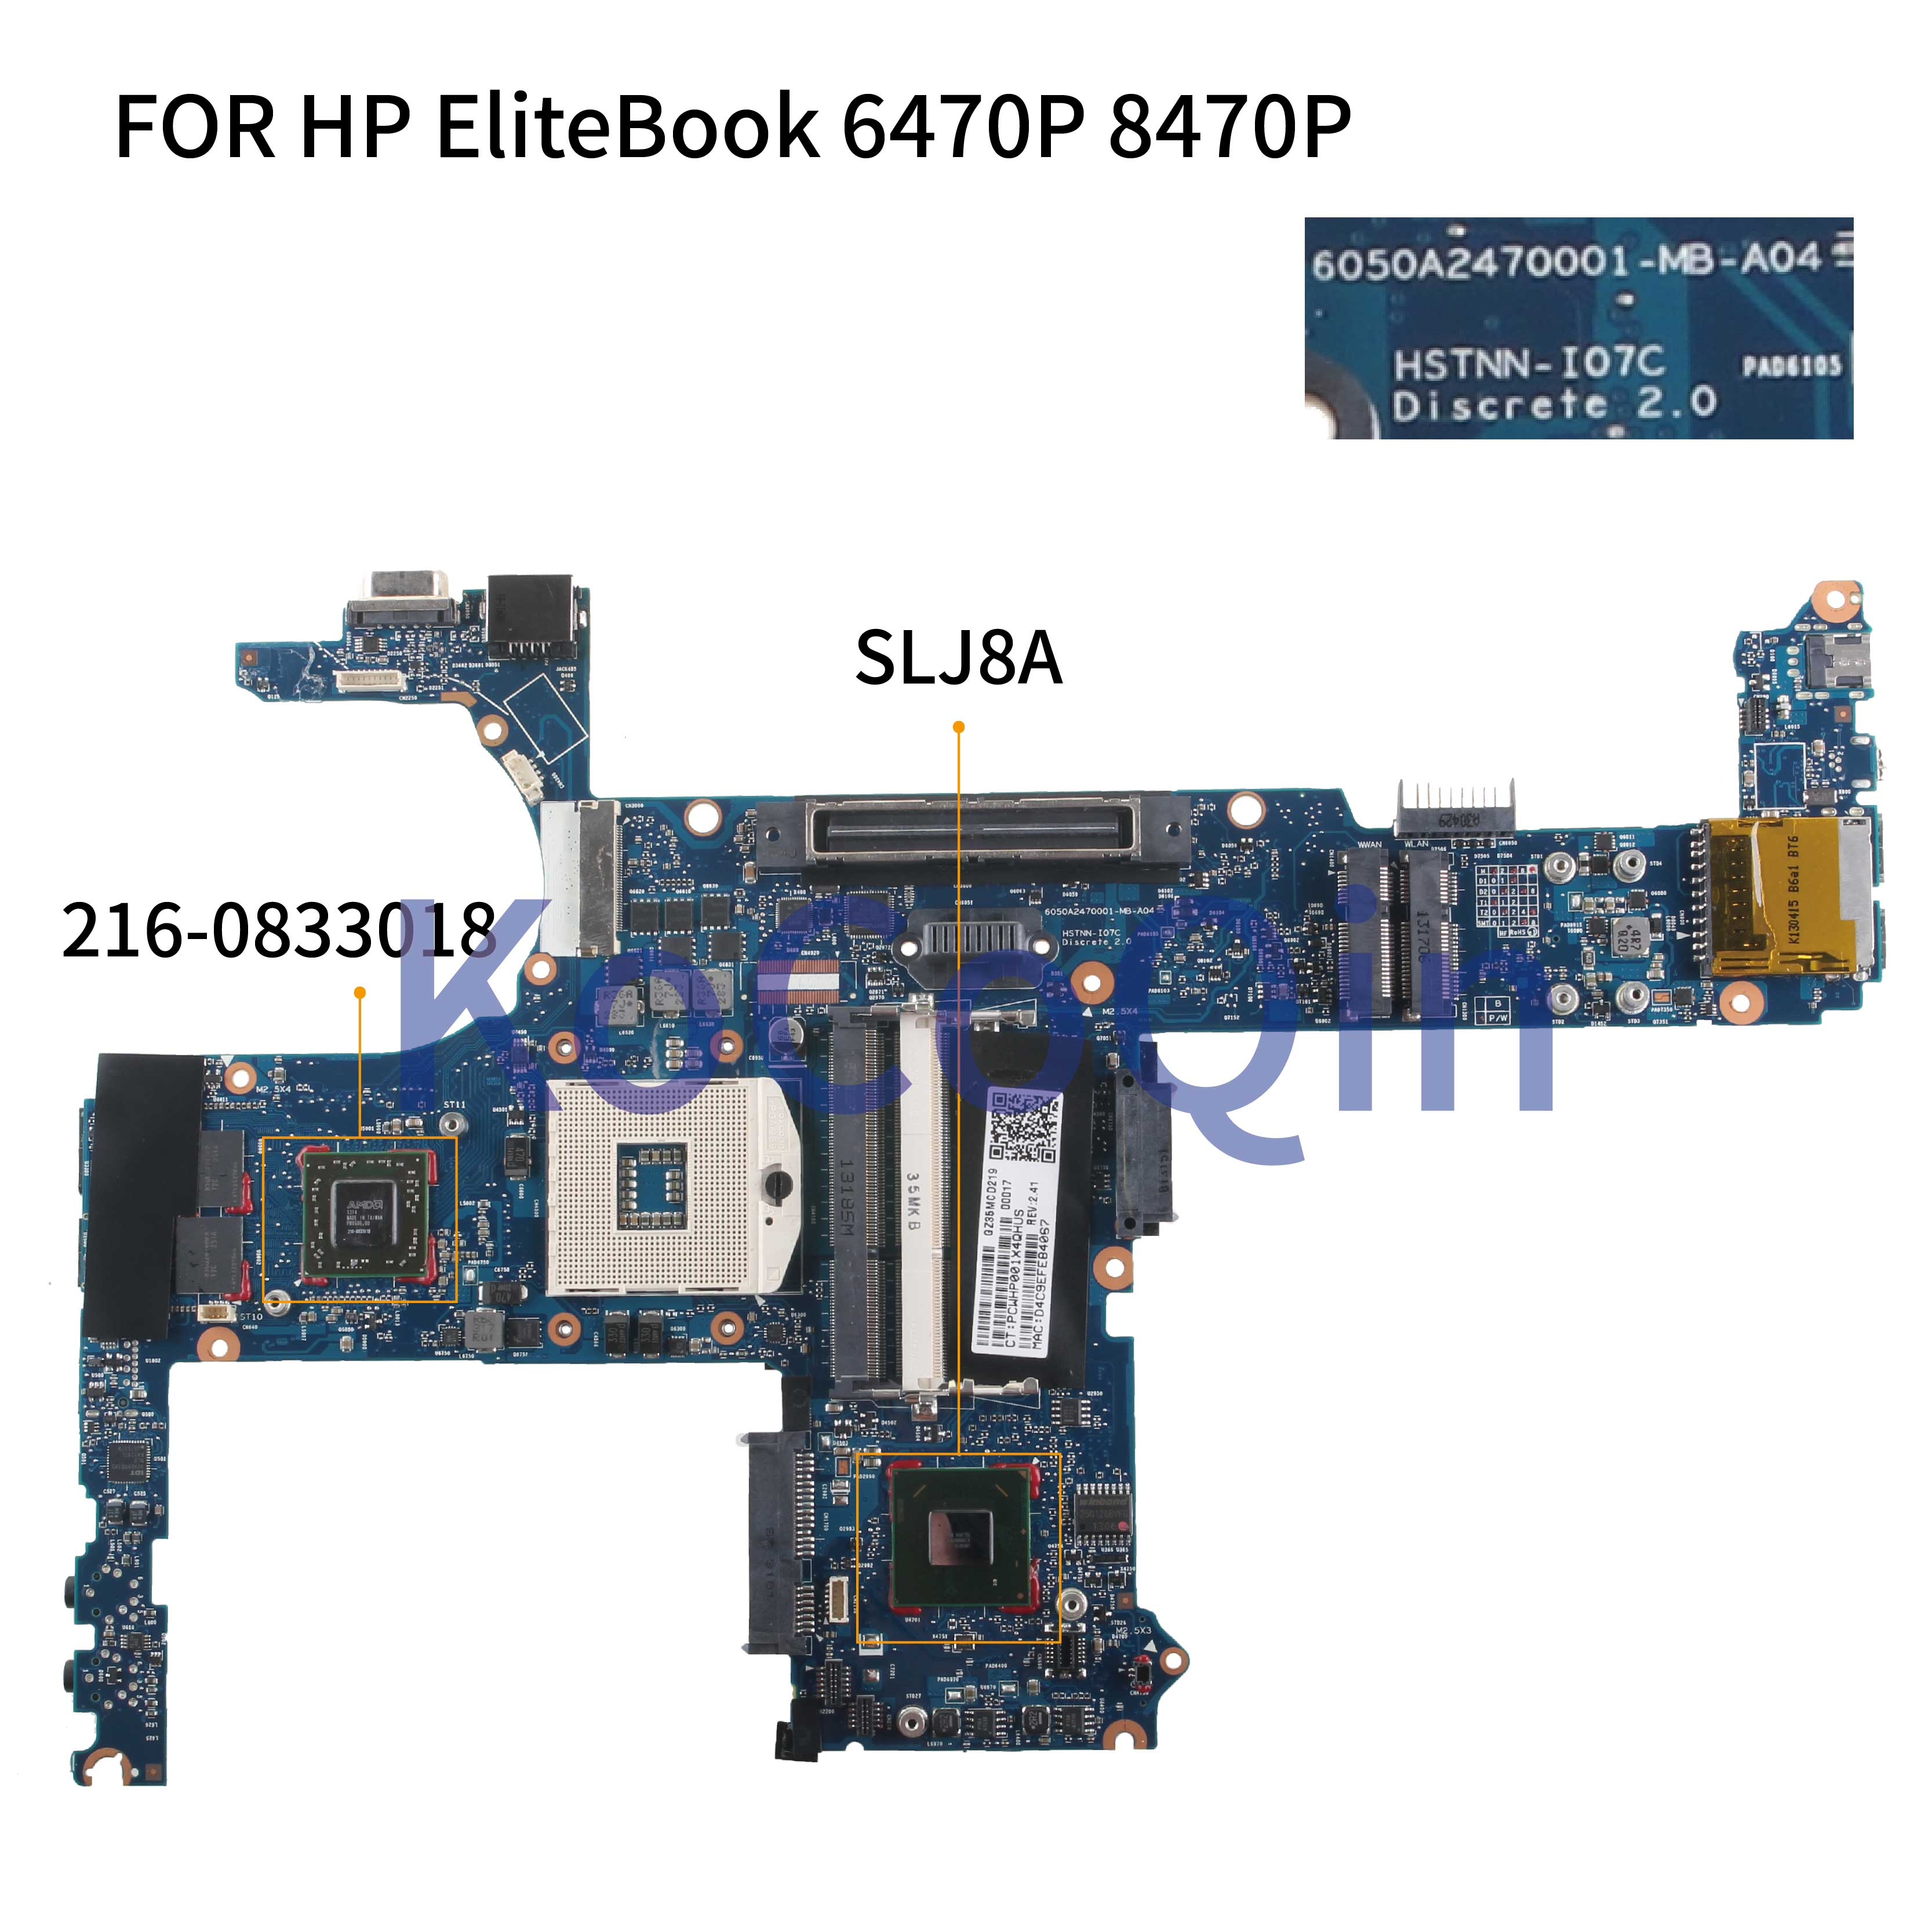 KoCoQin Laptop Motherboard FOR HP EliteBook 6470P 8470P 8470W Mainboard 6050A2470001 686042-001 686042-601 SLJ8A 216-0833018